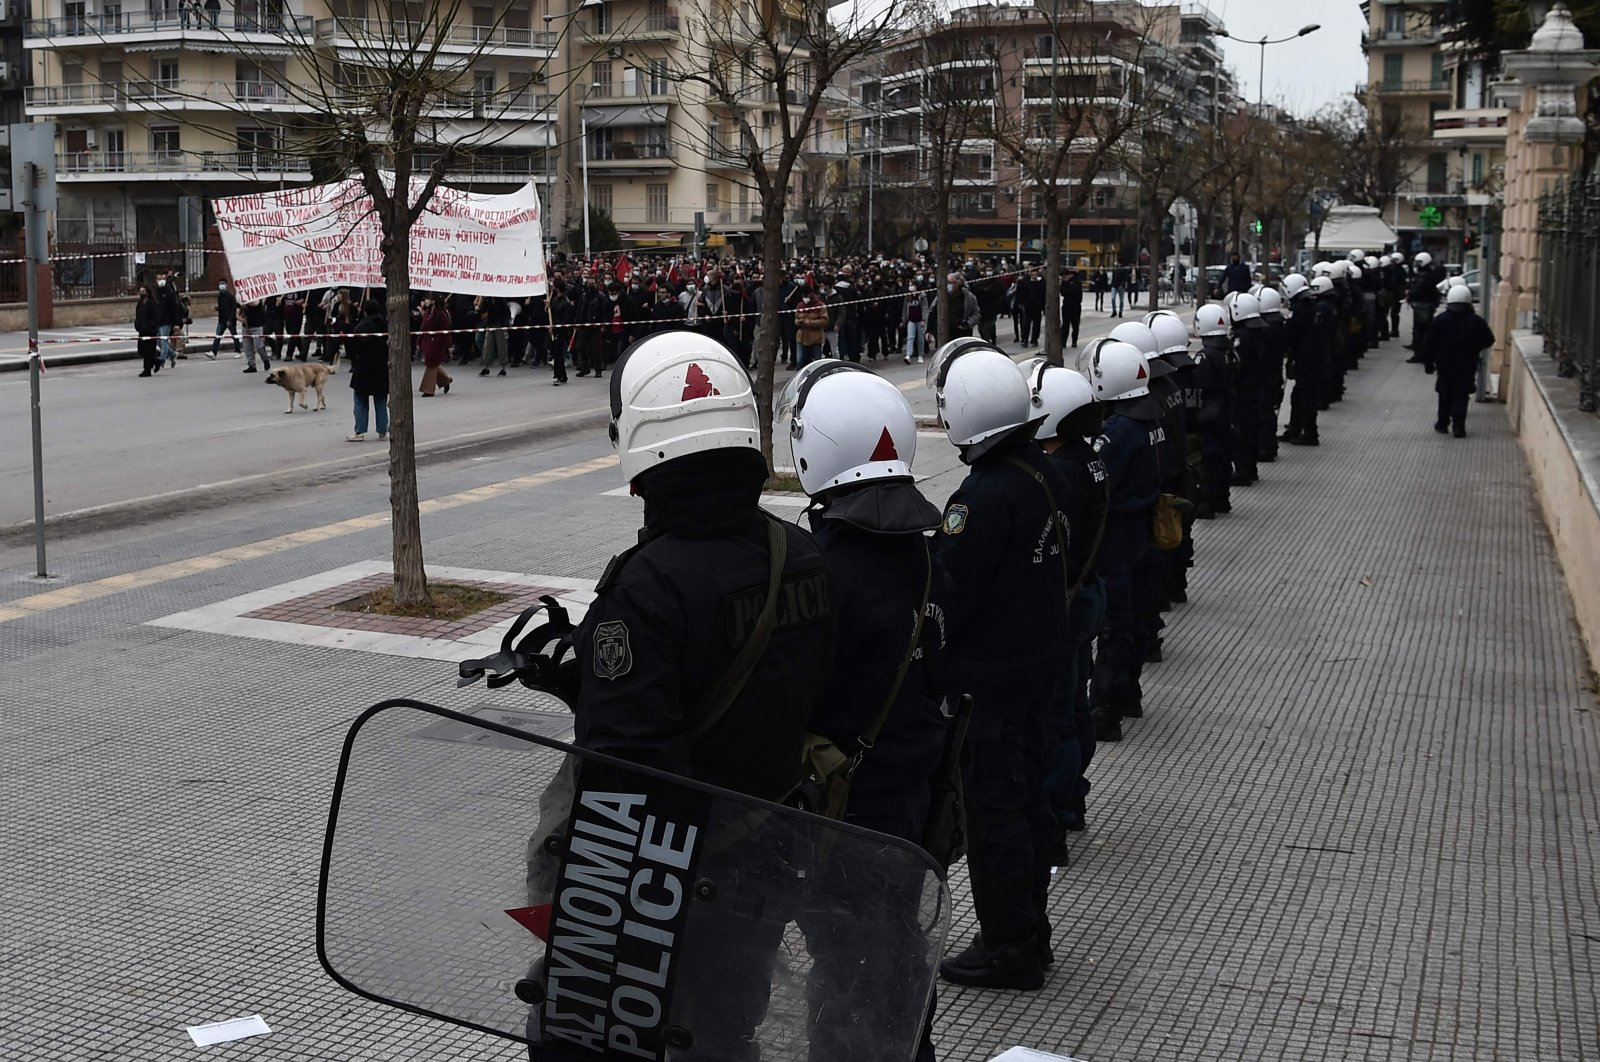 Greek anti-riot forces watch Greek students shouting slogans against police brutality after evening clashes with security forces over bitter allegations of police violence, in Thessaloniki, Greece, March 10, 2021. (AFP Photo)